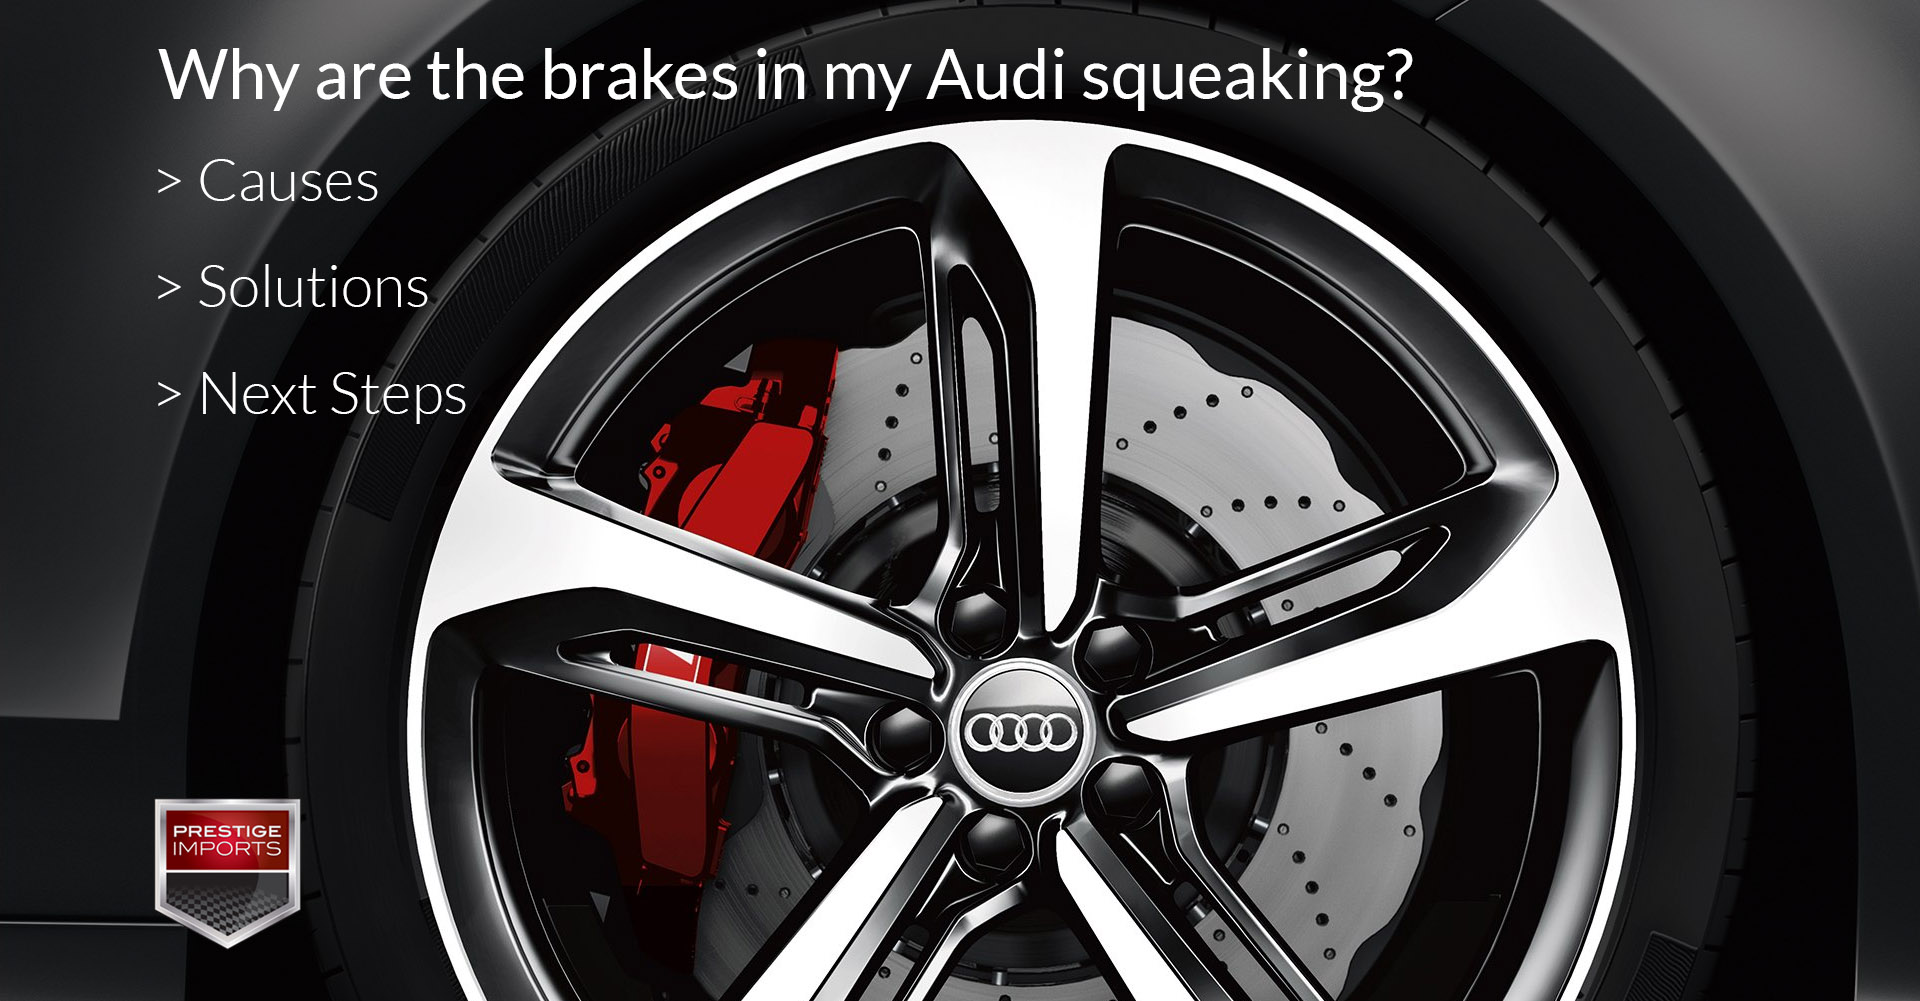 Why are my Audi brakes squeaking? Causes, Solutions, and